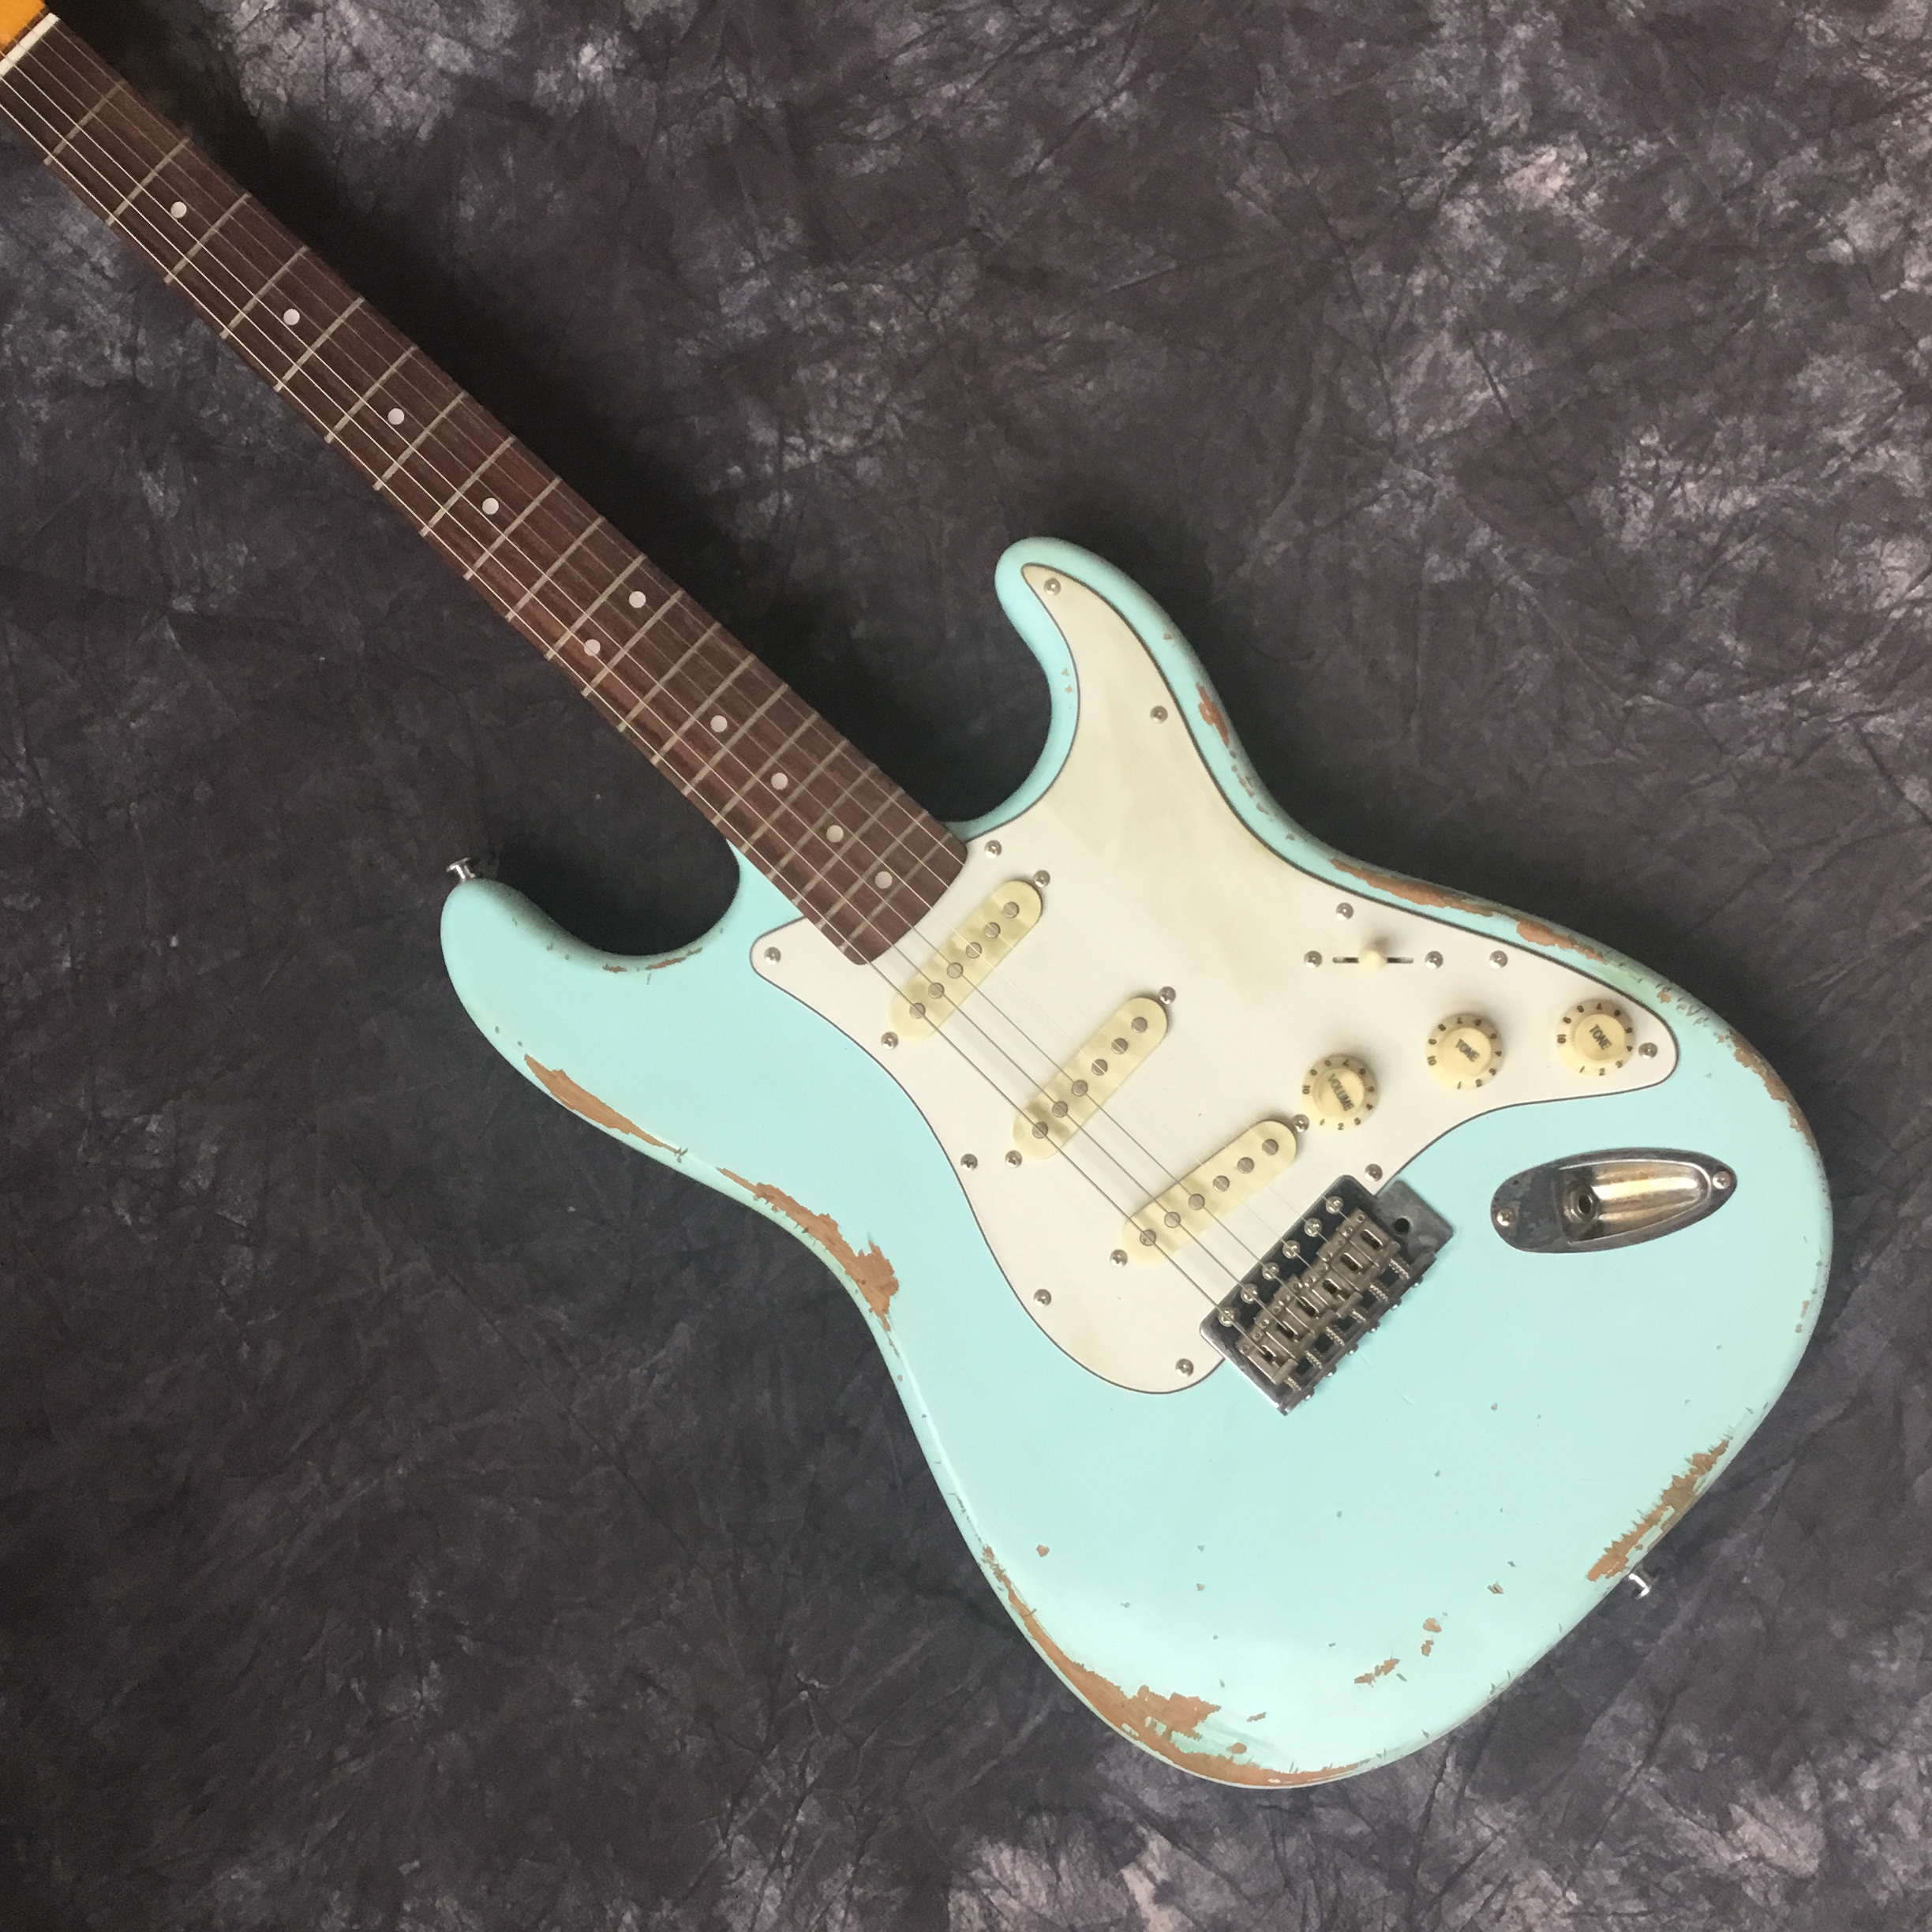 Custom Electric Guitar ST, handwork 6 Strings Fingerboard, Relic by Hands guitar, Stratocasterre gitaar color blue image